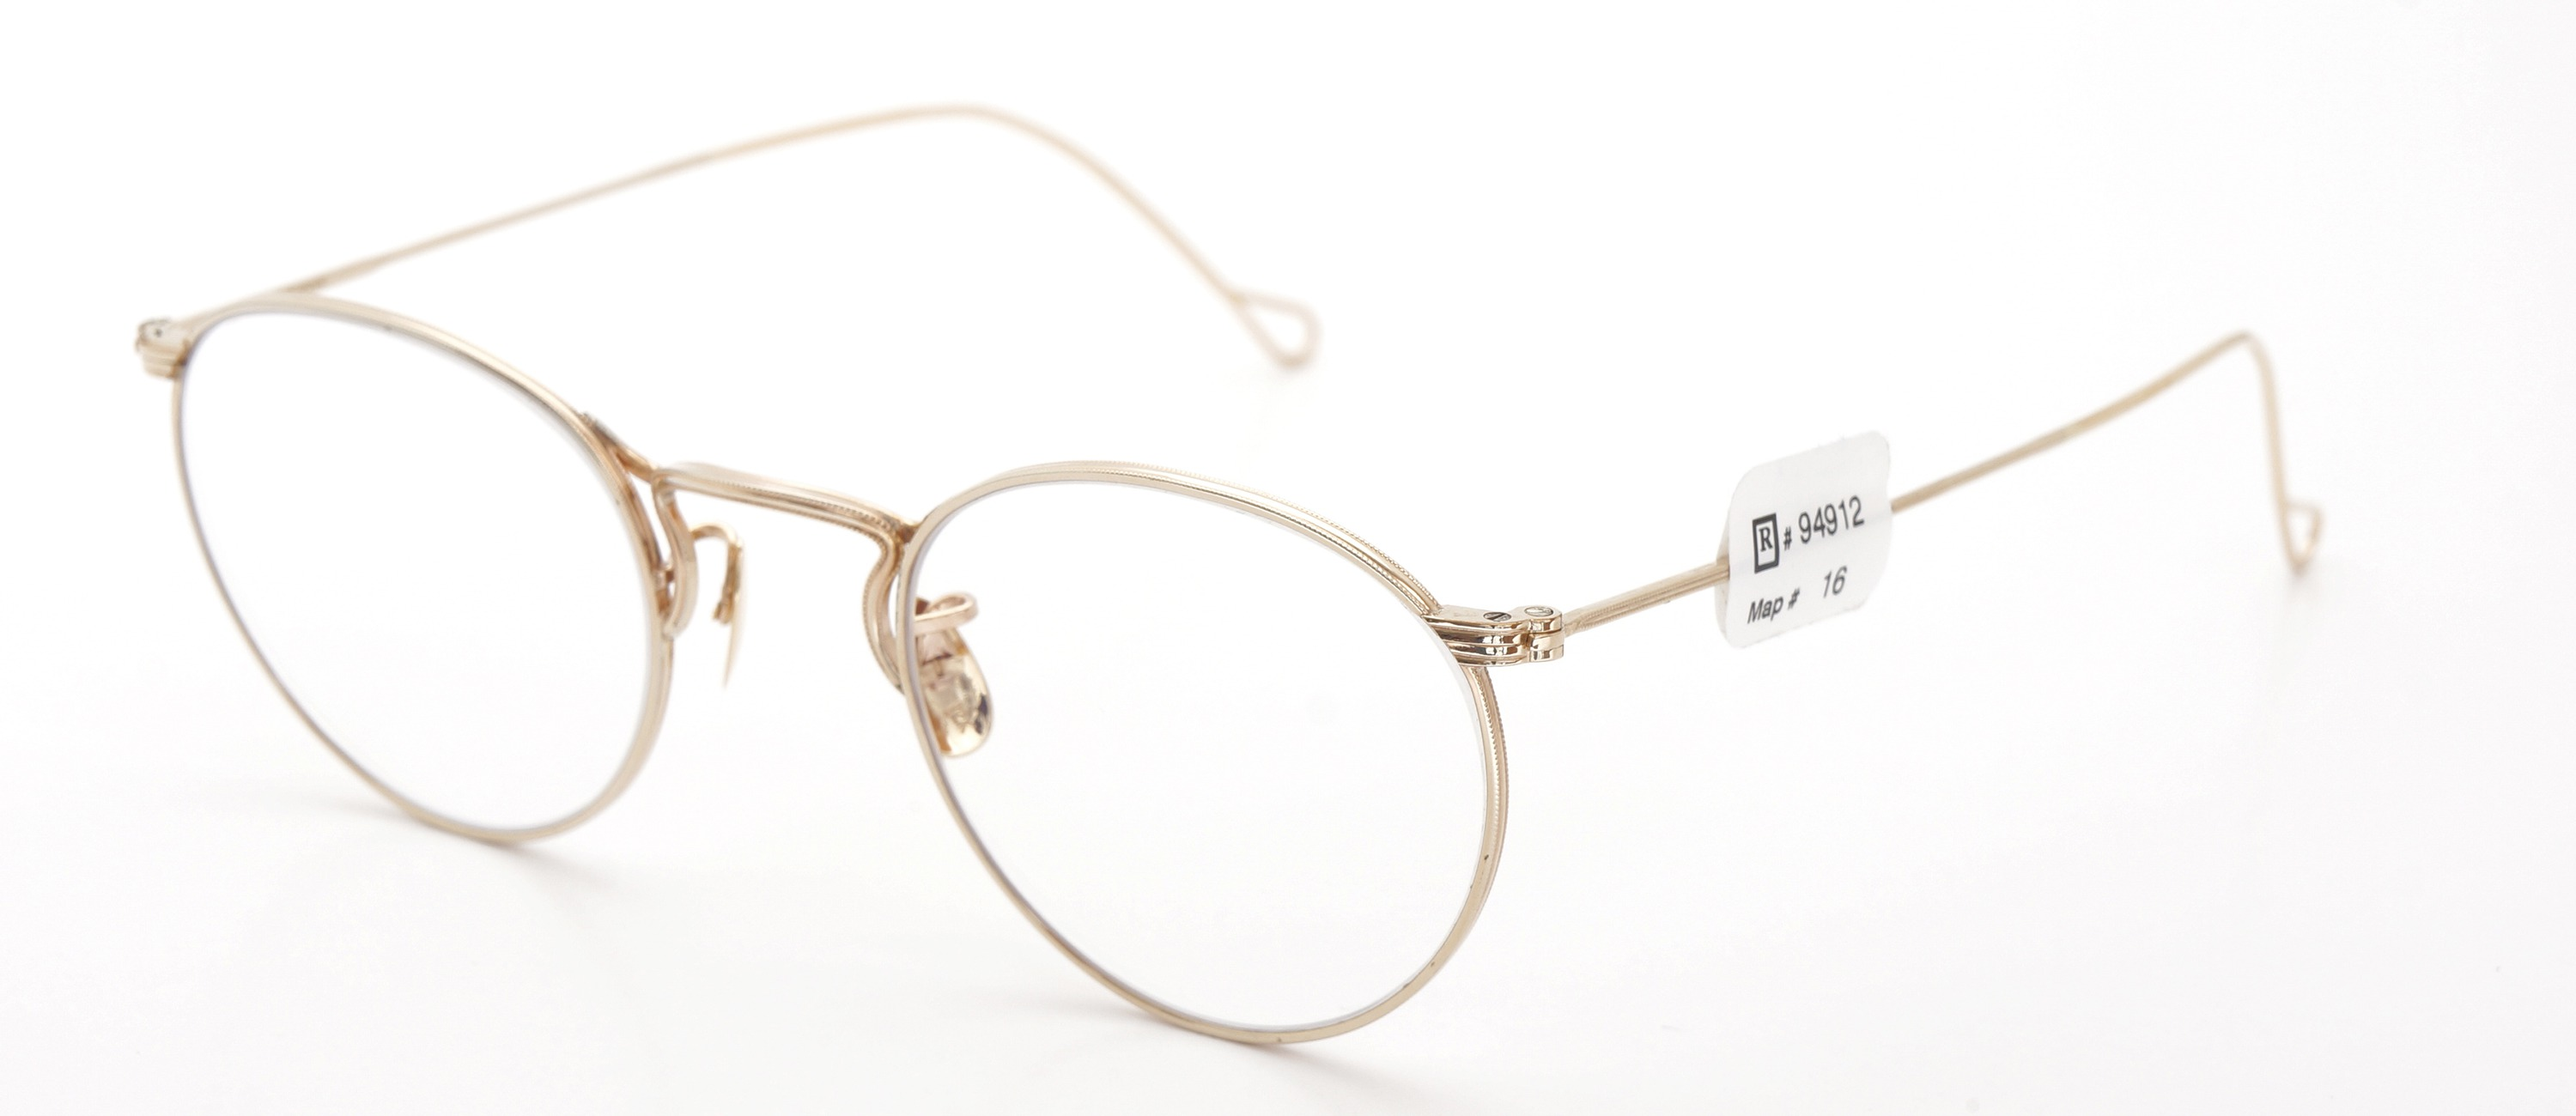 The Spectacle メガネ 1930s-40s  American Optical Full-Frame Ful-Vue P-5 YG 46-22 イメージ3